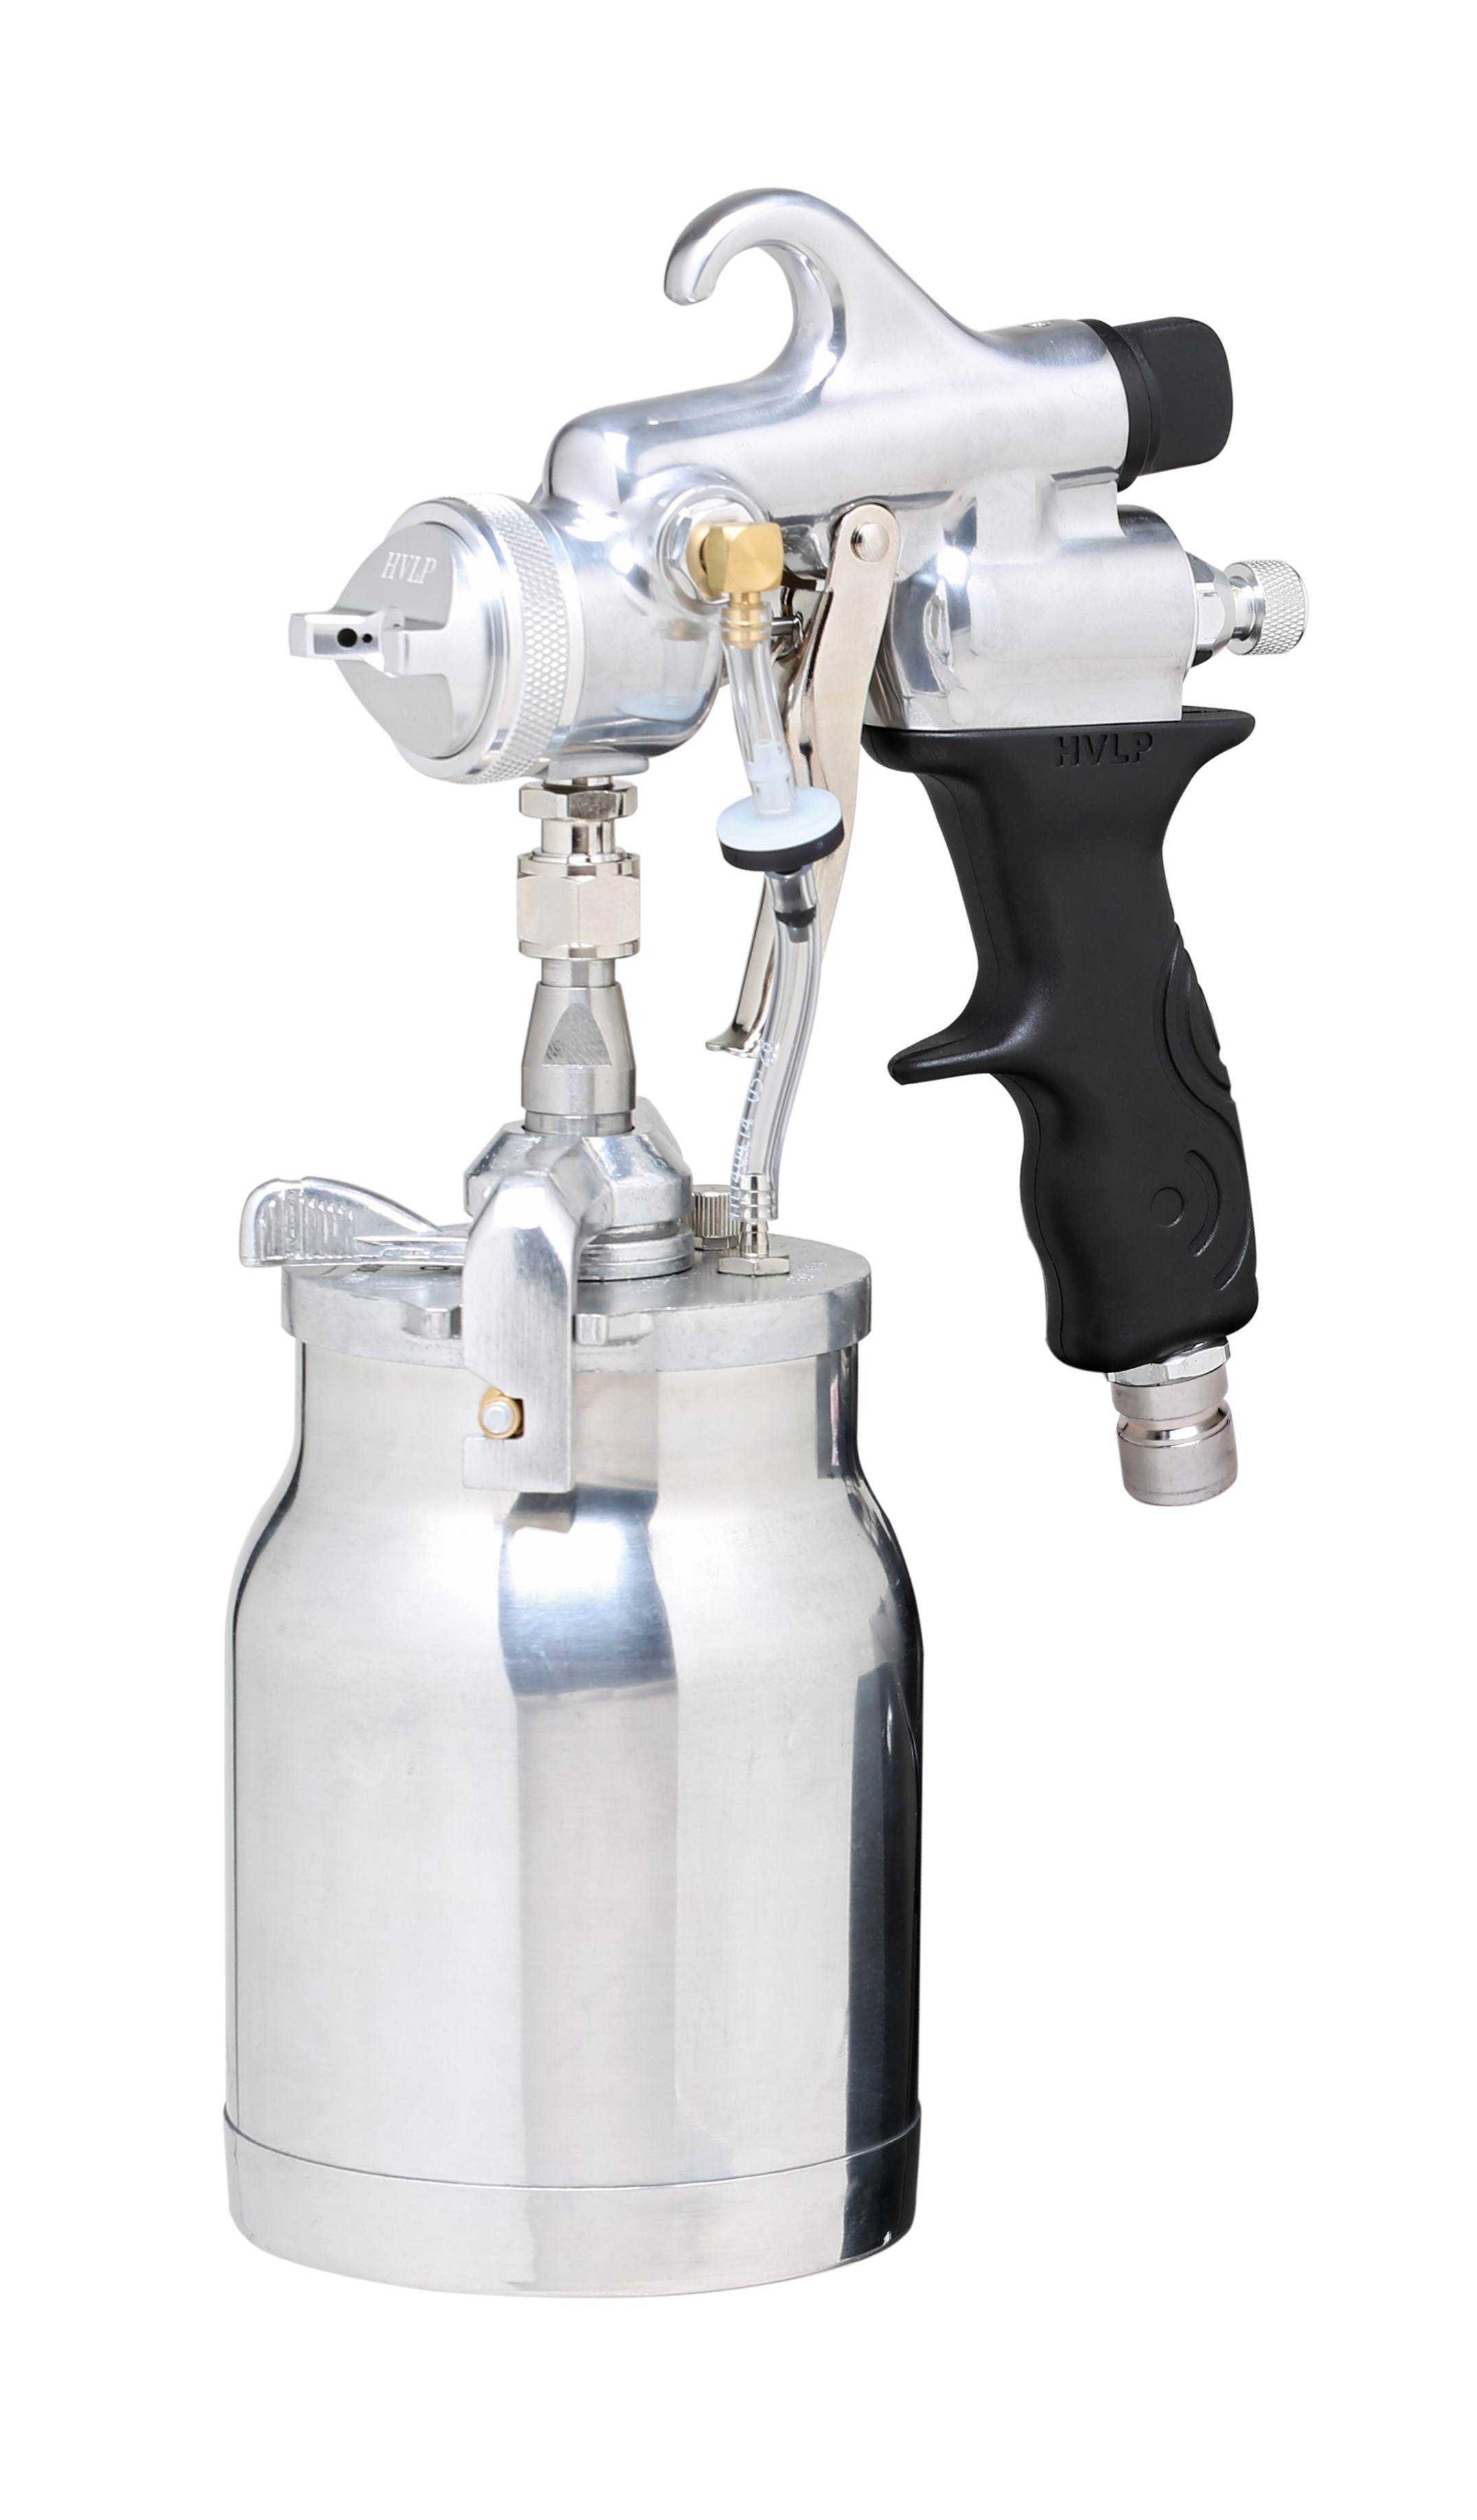 E7200 HVLP Non-Bleeder Spray Gun